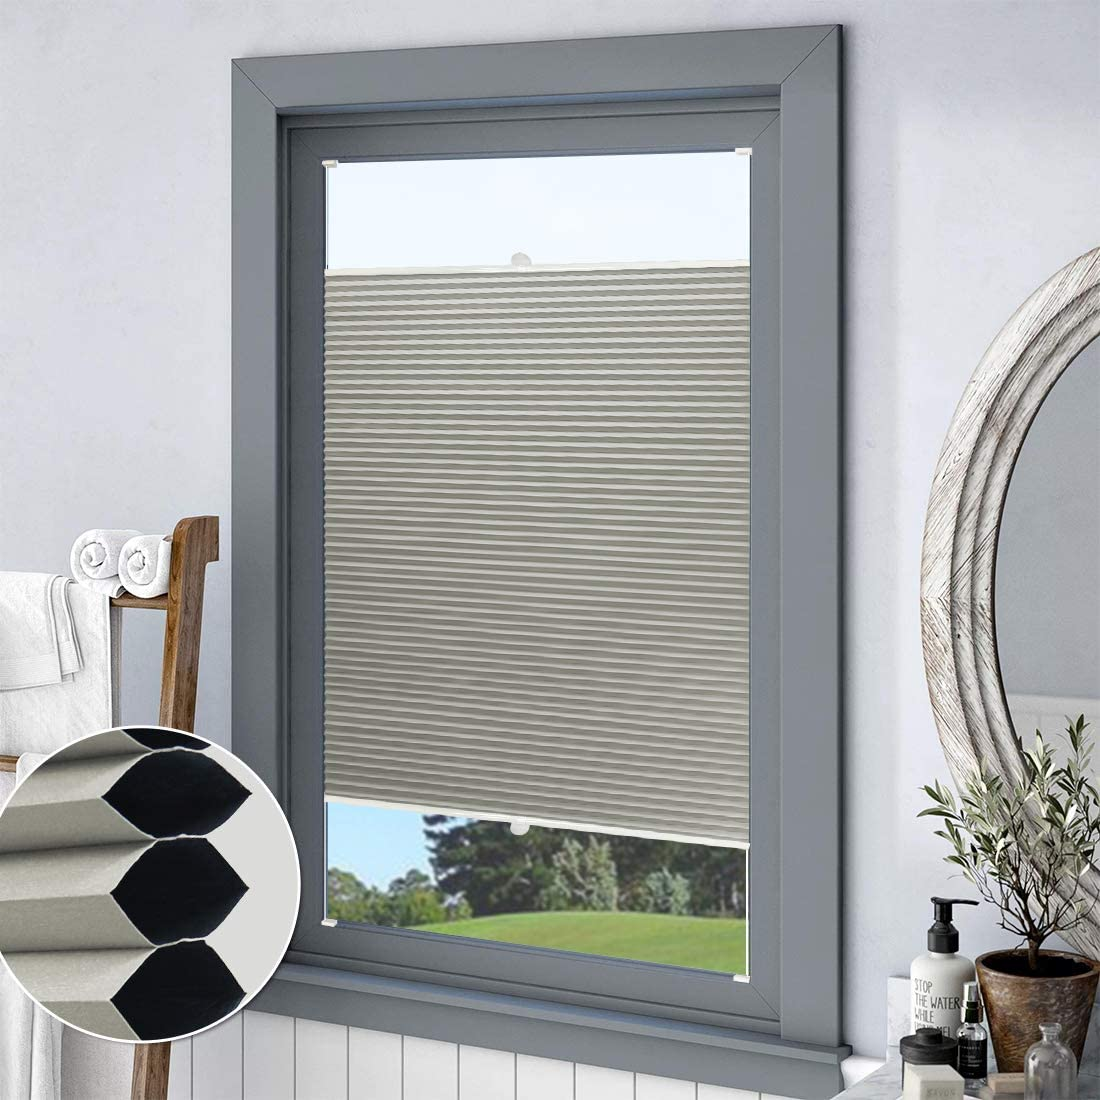 Amazon Com Keego Top Down Bottom Up Blackout Honeycomb Shades Cellular Shades Custom Cut To Size Window Blinds Grey 31 1 2 W X 64 H Home Kitchen